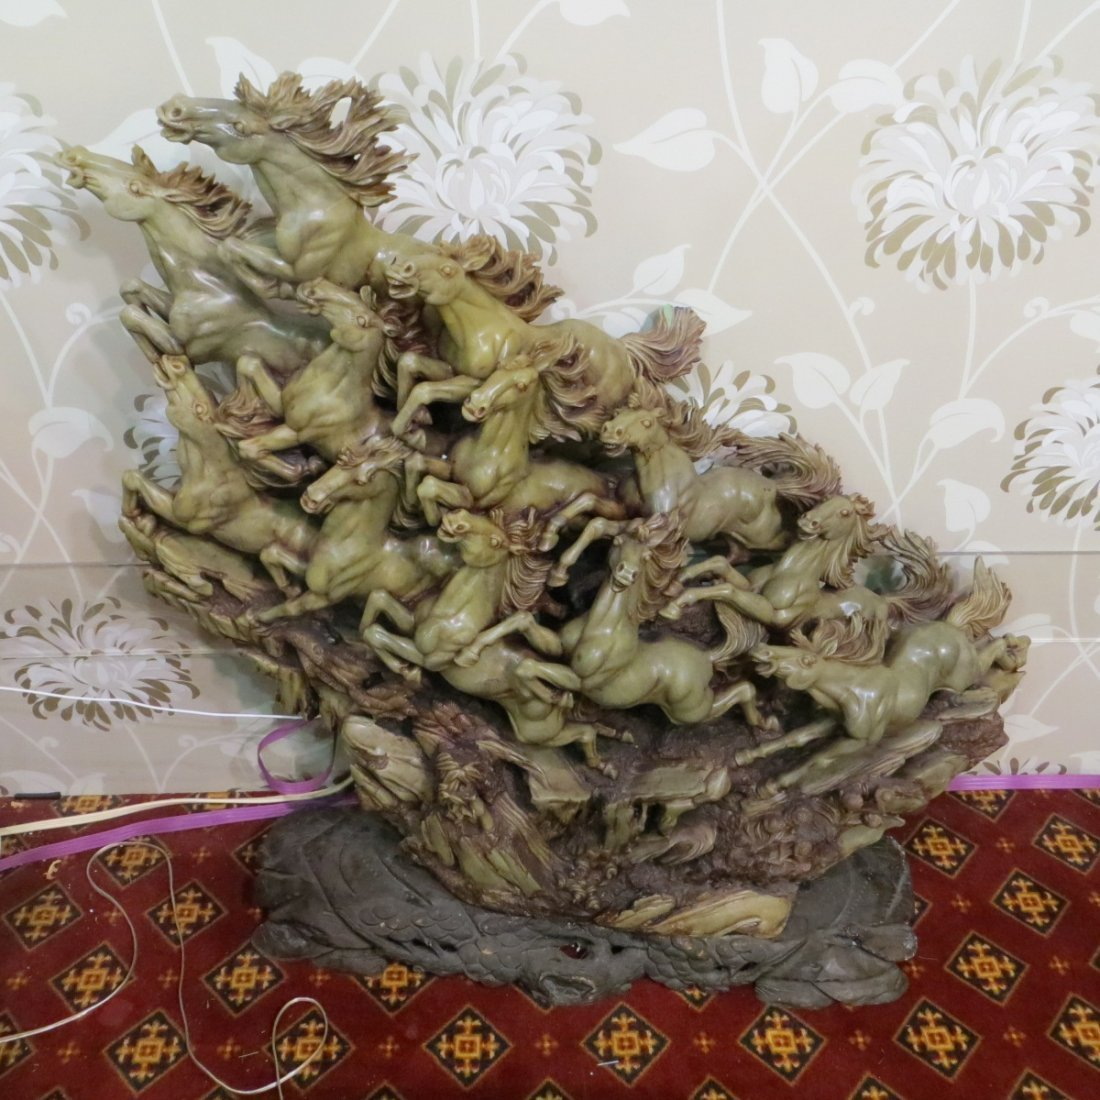 Chinese Jade Sculpture of Horses Group